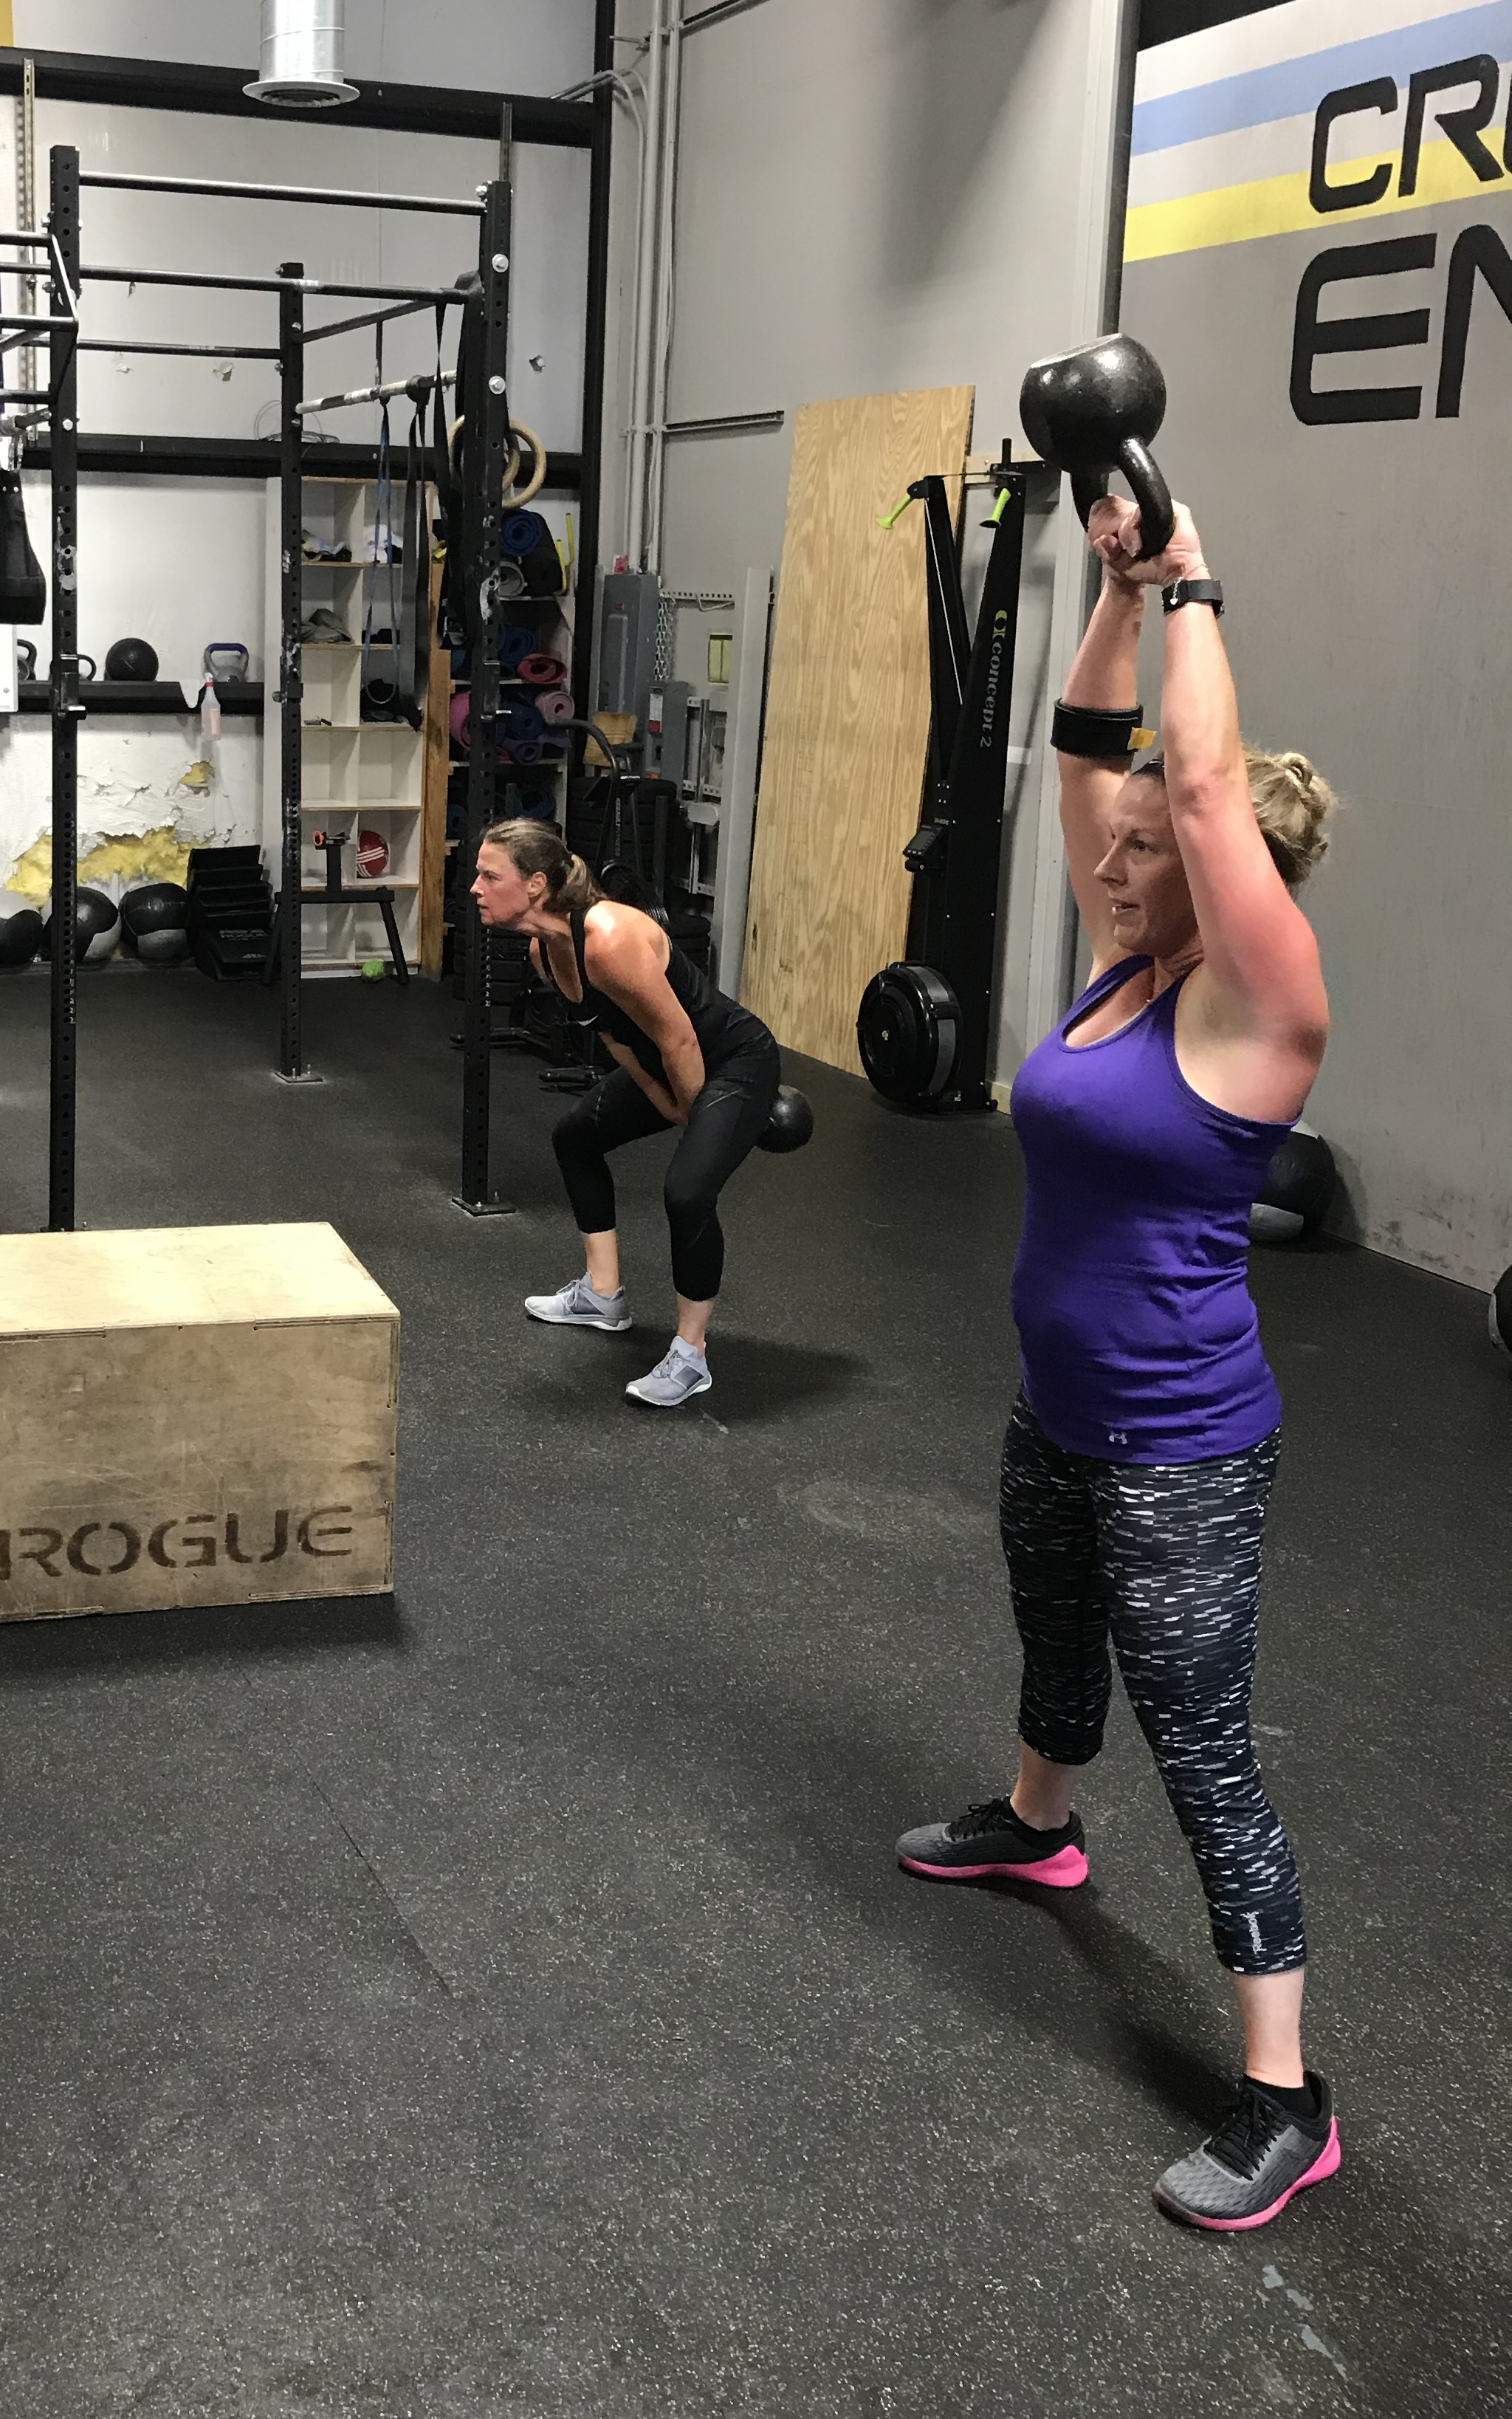 Conditioning - 16 Minute EMOM1.) 100m Run/Row2.) 15 DU (Rx+: 30)3.) 30s Handstand Hold4.) 15 KB SwingsFinisher: DB Front Raise 3x10DB Shoulder Press 3x10